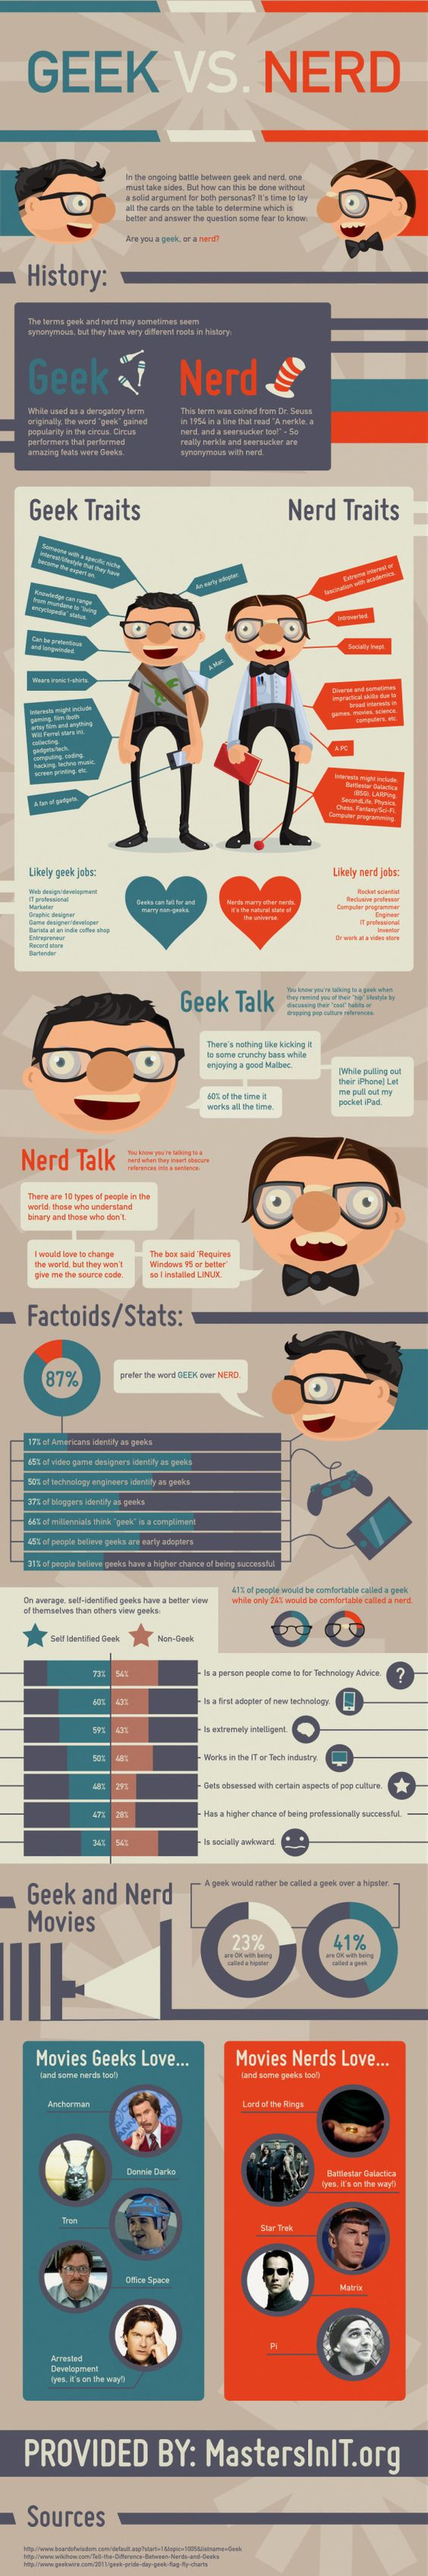 Geek vs. Nerd: Which Are You?